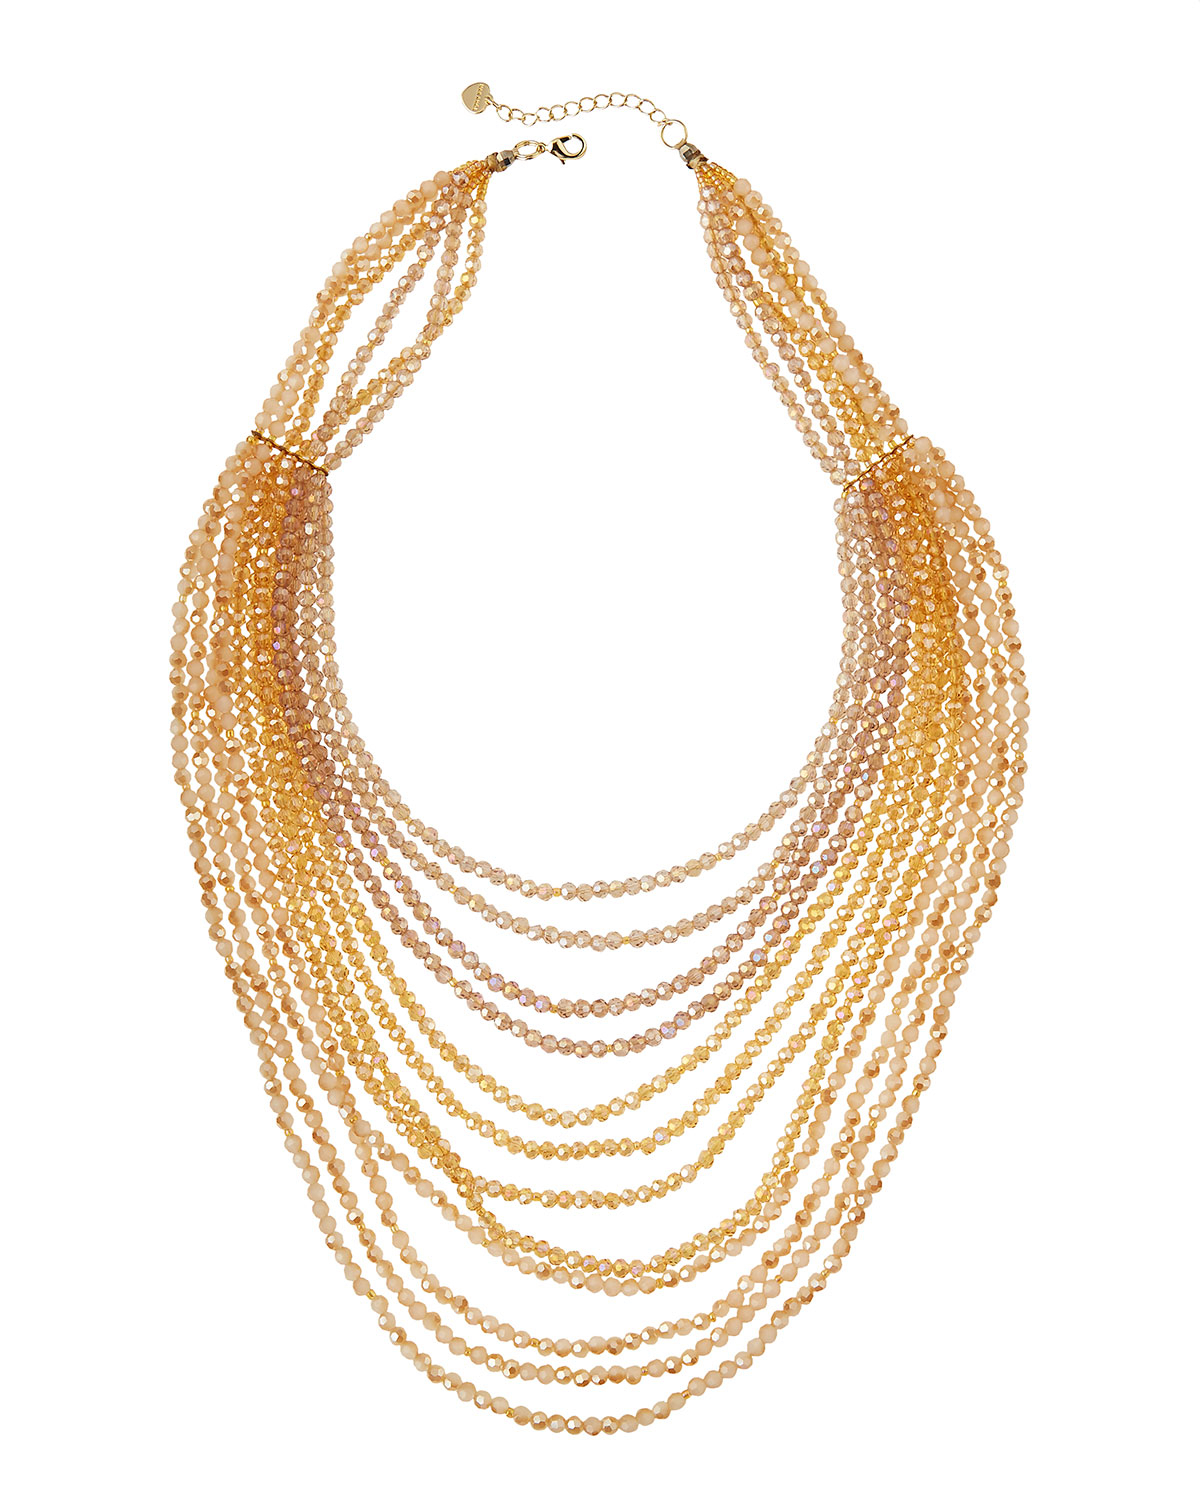 Nakamol Layered Long Bead Necklace JEVxeIfb